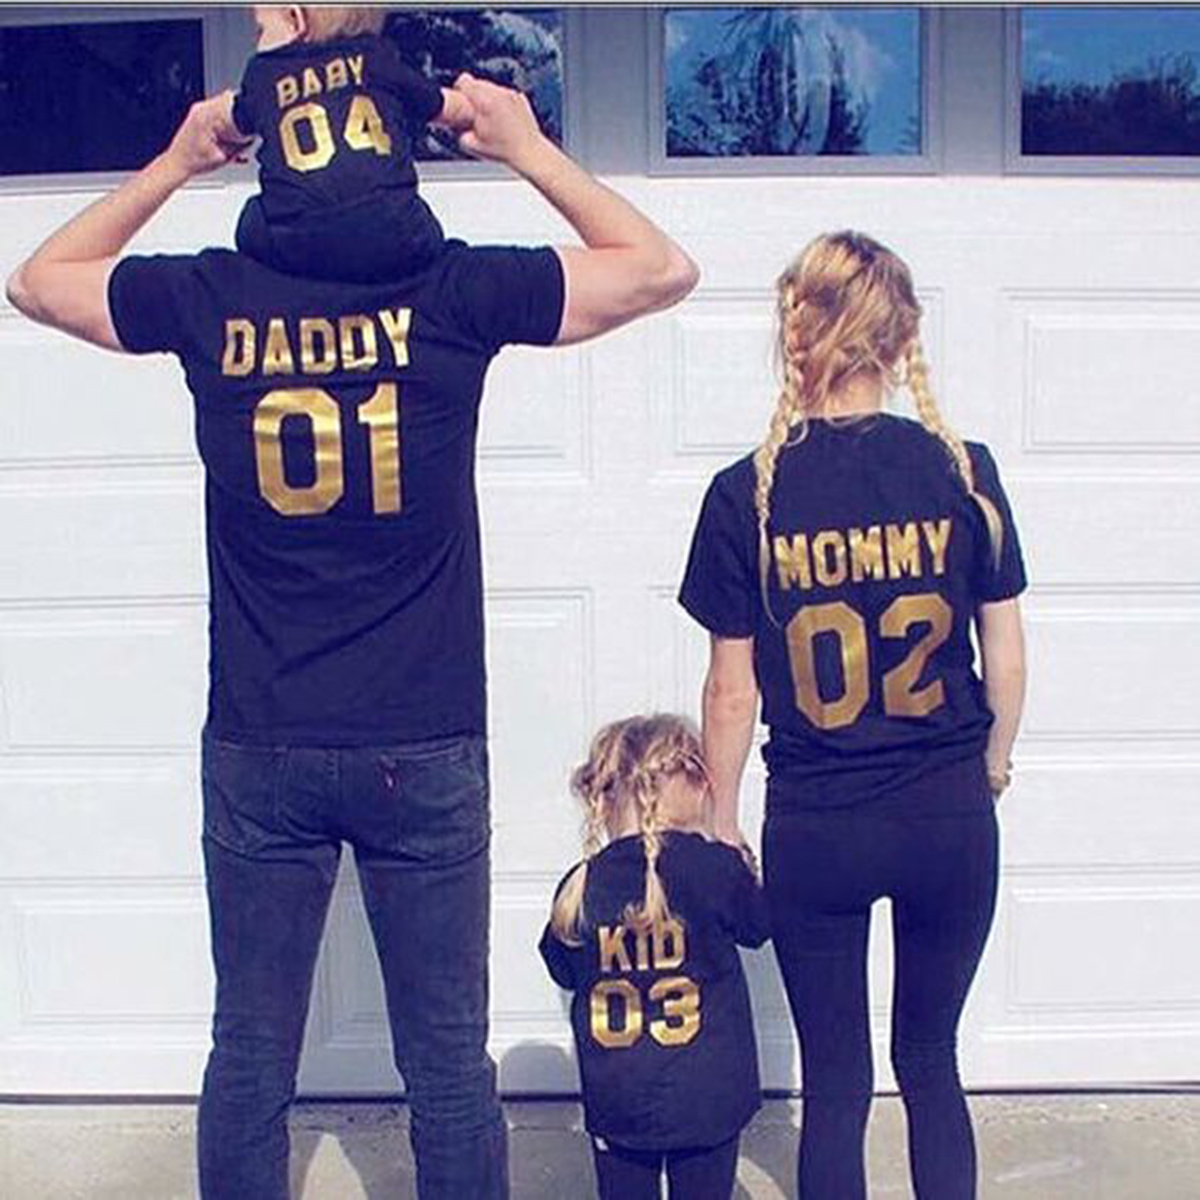 a12c1e96d Family Look Clothing short Sleeve t shirt DADDY MOMMY KID BABY Girl Boy  Clothes Family Matching